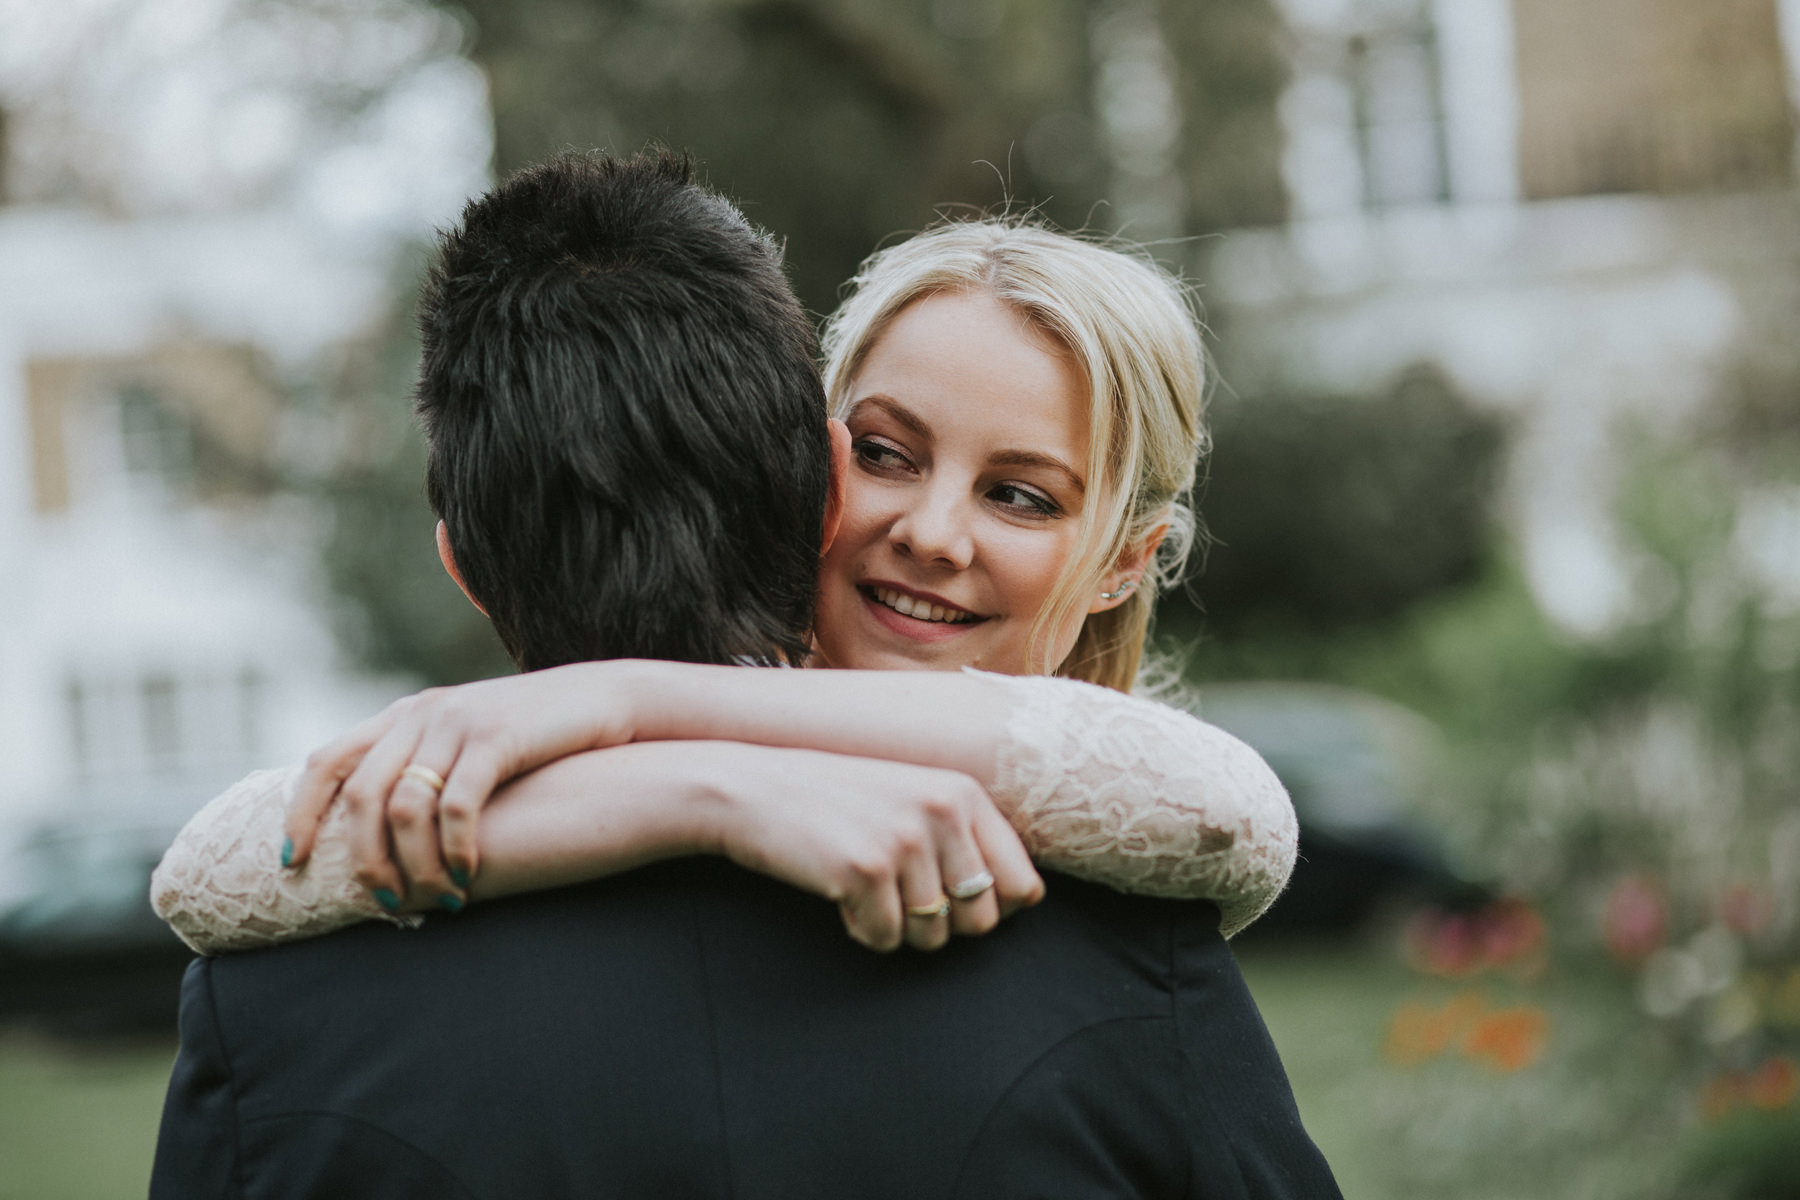 LD-490-bride-groom-hugging-during-couple-portraits-session-clapham-London-alternative-reportage-wedding-photographer.jpg